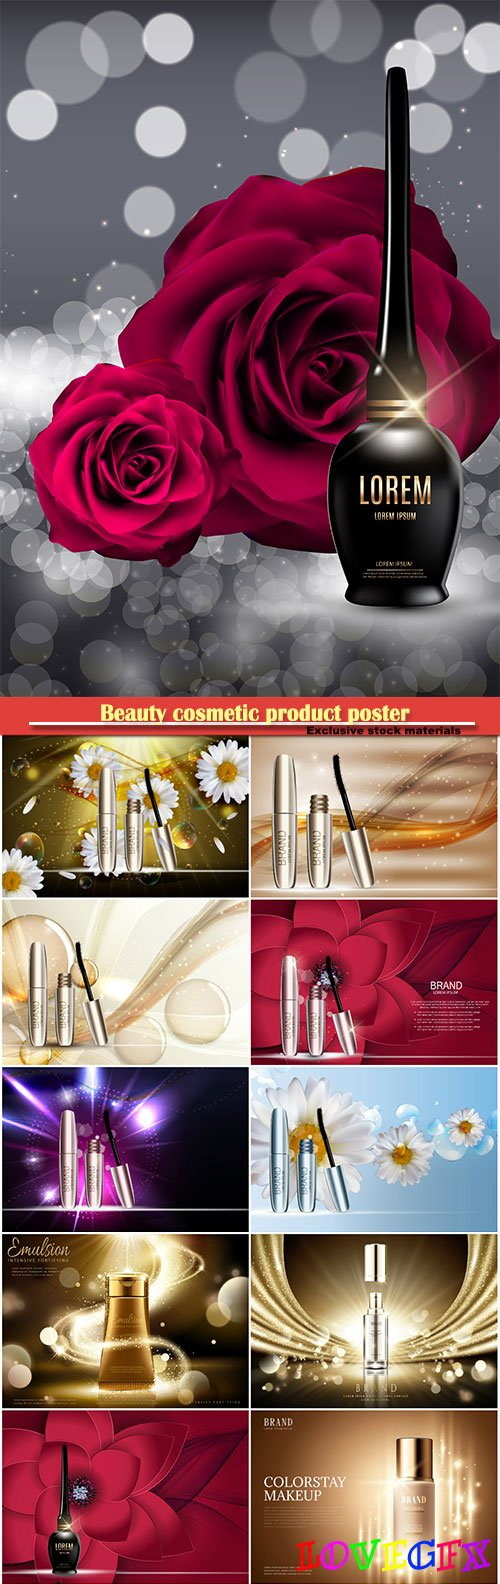 Beauty cosmetic product poster, fashion design makeup cosmetics, background in 3d illustration